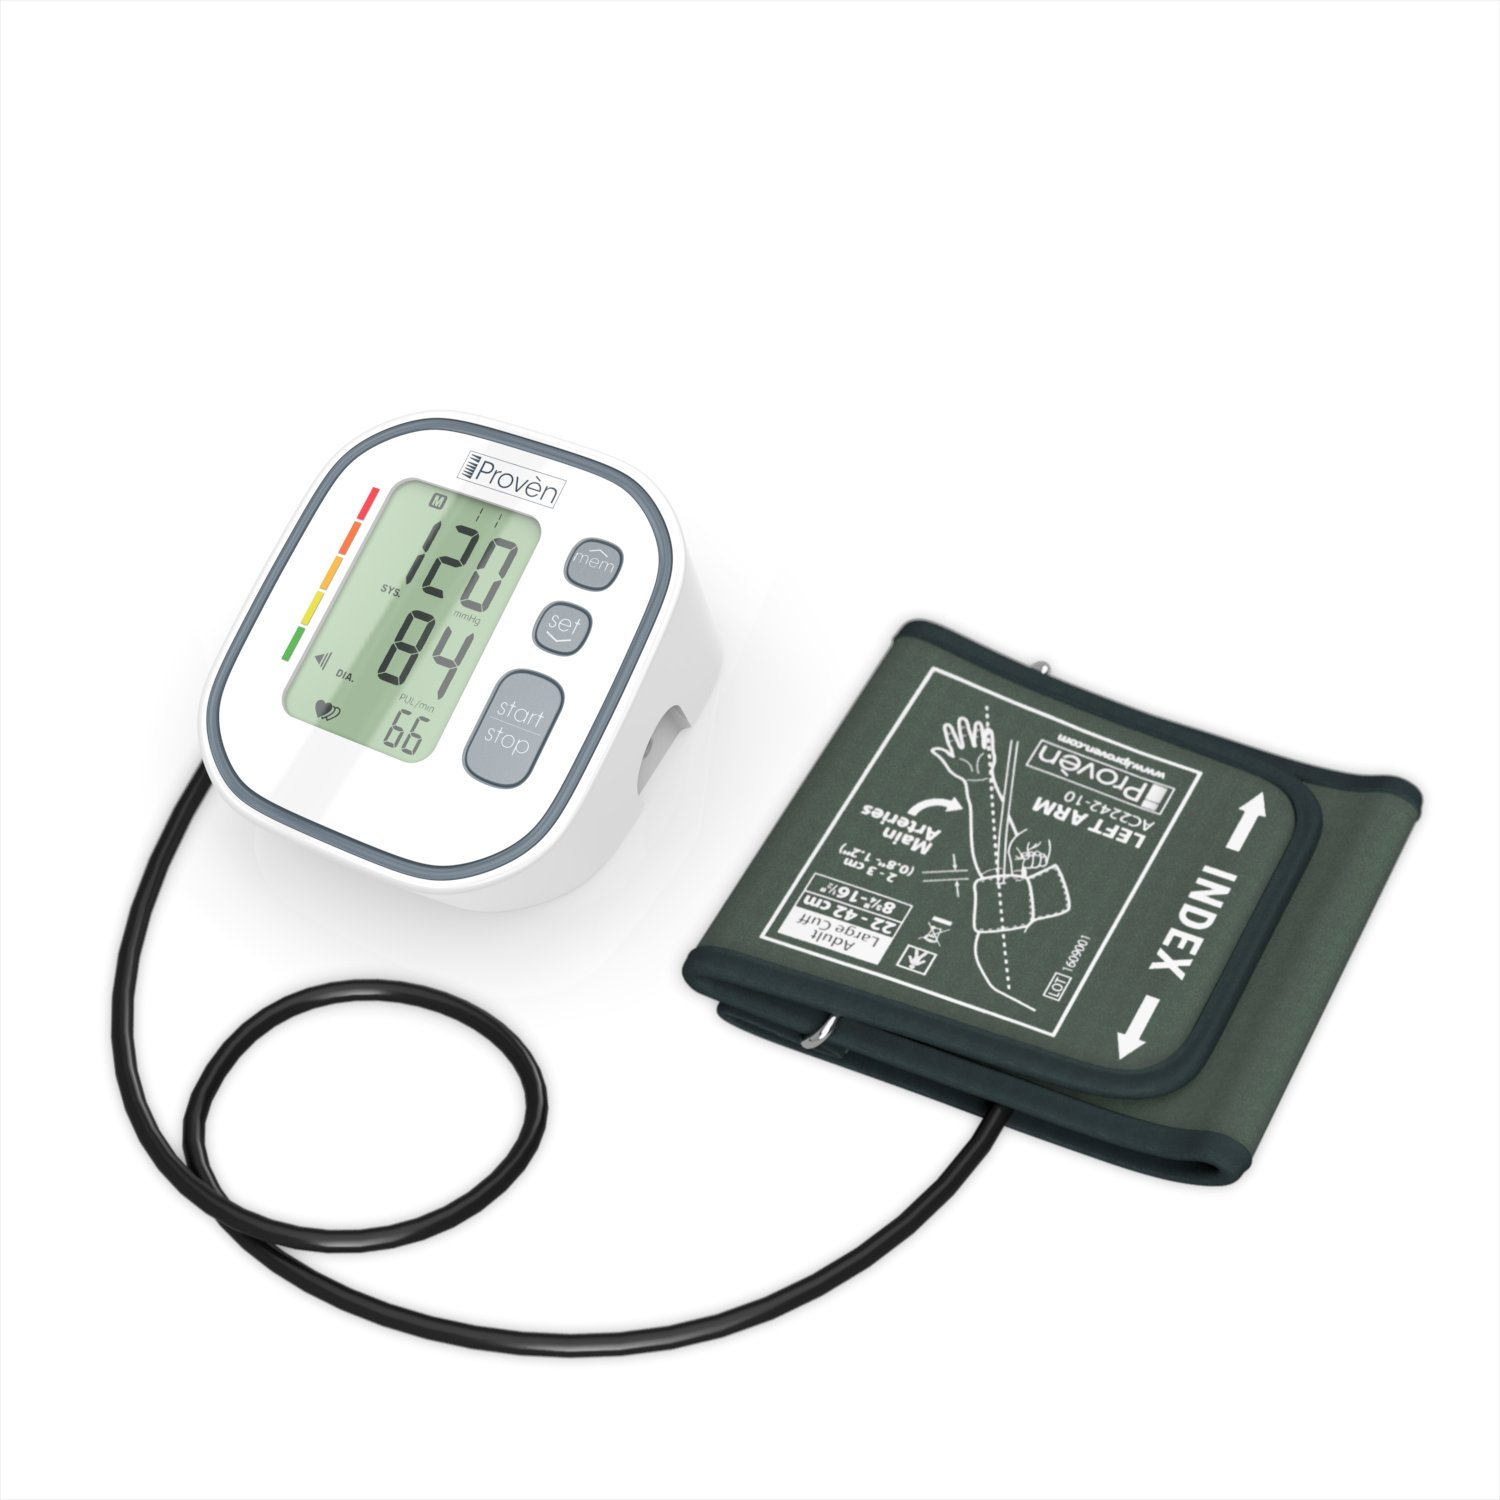 Digital Automatic Blood Pressure Monitor - Upper Arm Cuff - Large Screen - Accurate & Fast Reading Electronic Machine - Top Rated BP Monitors and Cuffs - FDA Approved - iProvèn BPM-634 - for Home Use by iProvèn (Image #7)